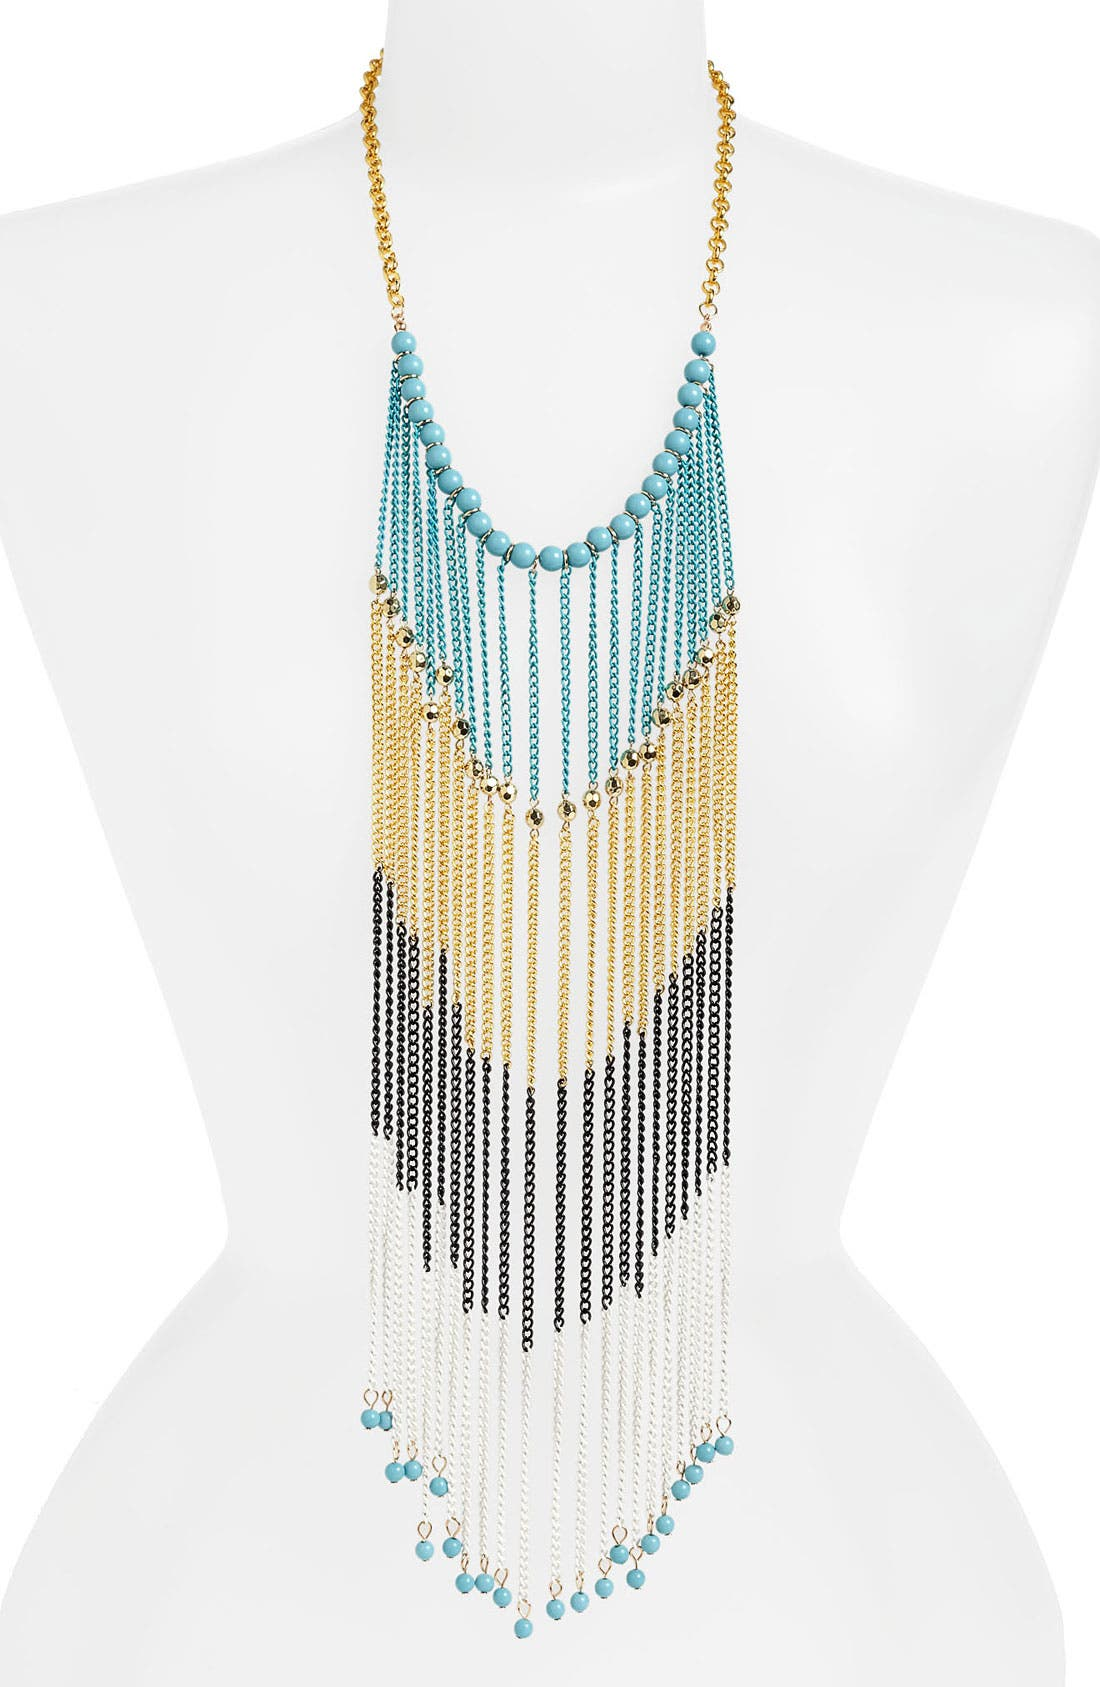 Alternate Image 1 Selected - BP. Mixed Metal Chain Fringe Necklace